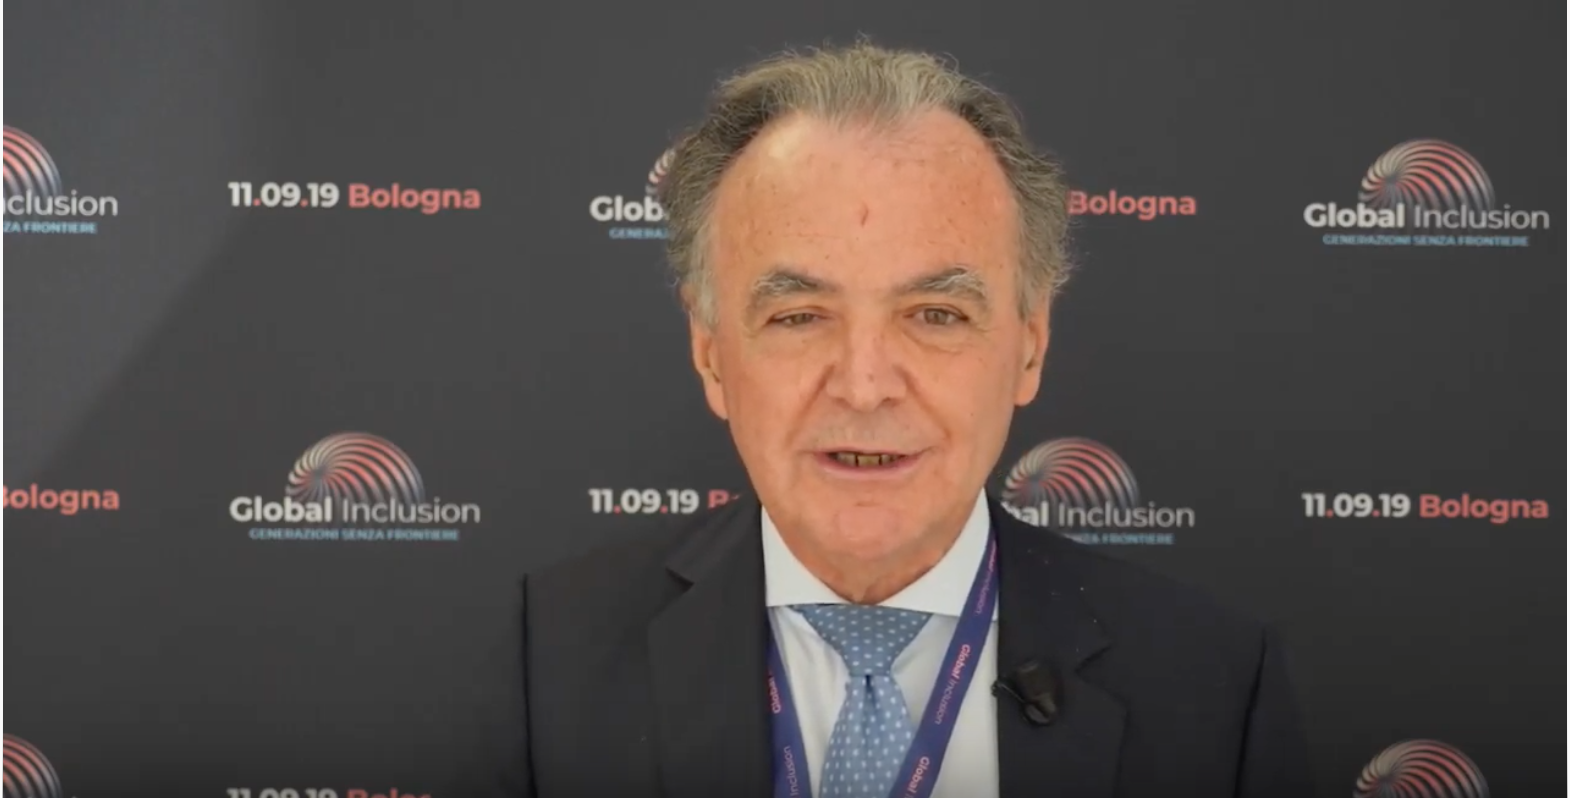 [video] Luigi Bobba, Presidente del Comitato Global Inclusion Art. 3